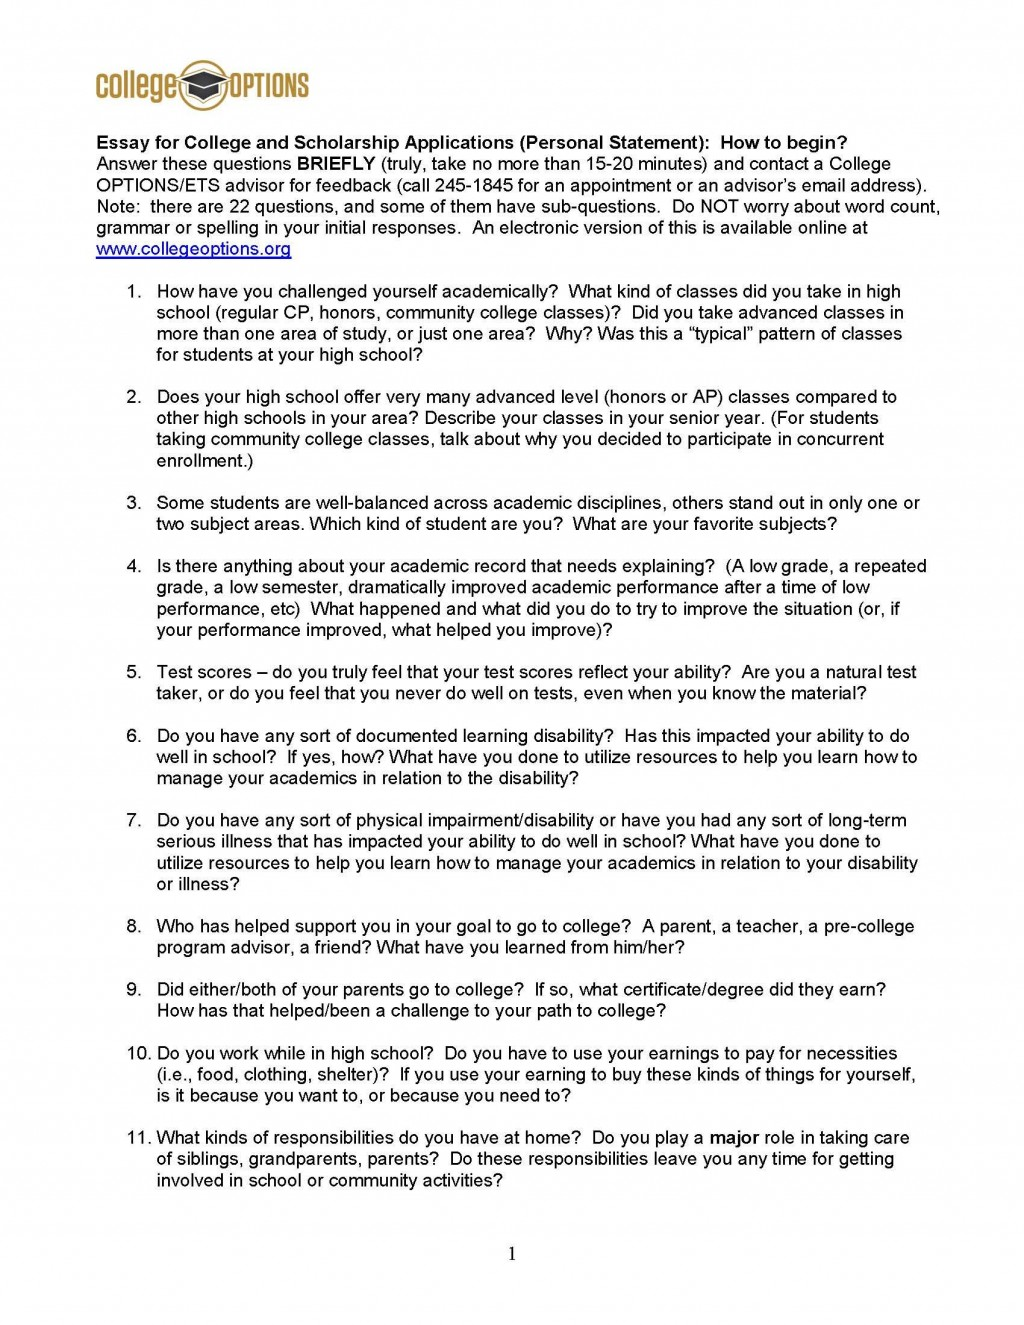 002 Tips For Writing College Application Essays Essay Fantastic Best Large